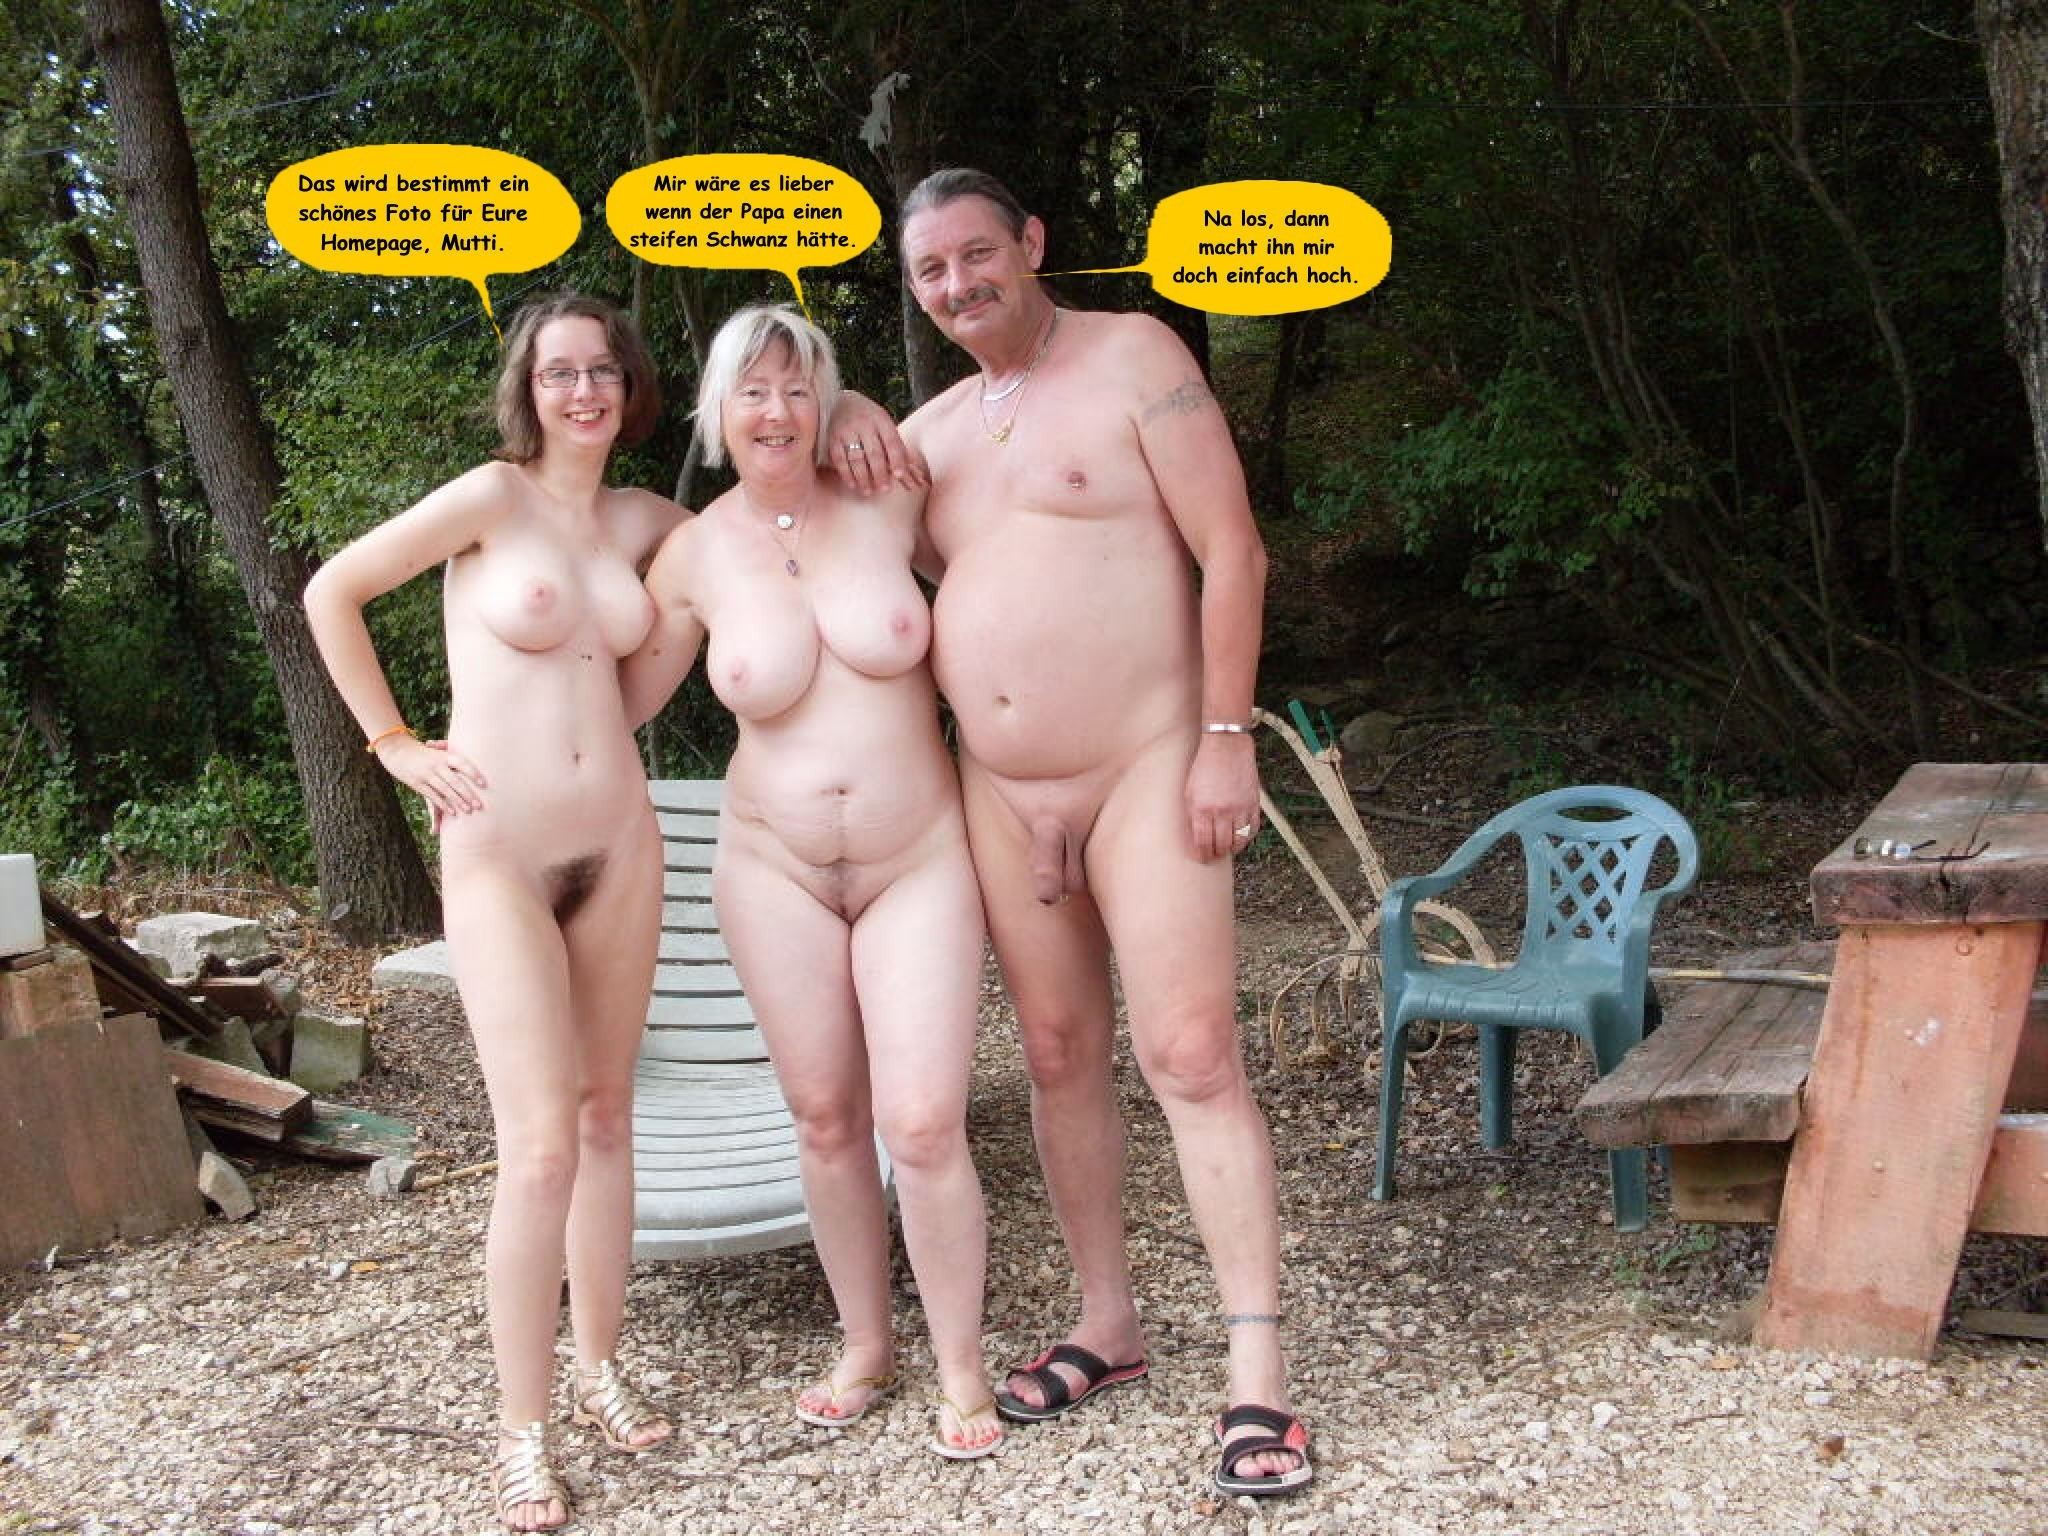 Apologise, cheery lane nudist camp